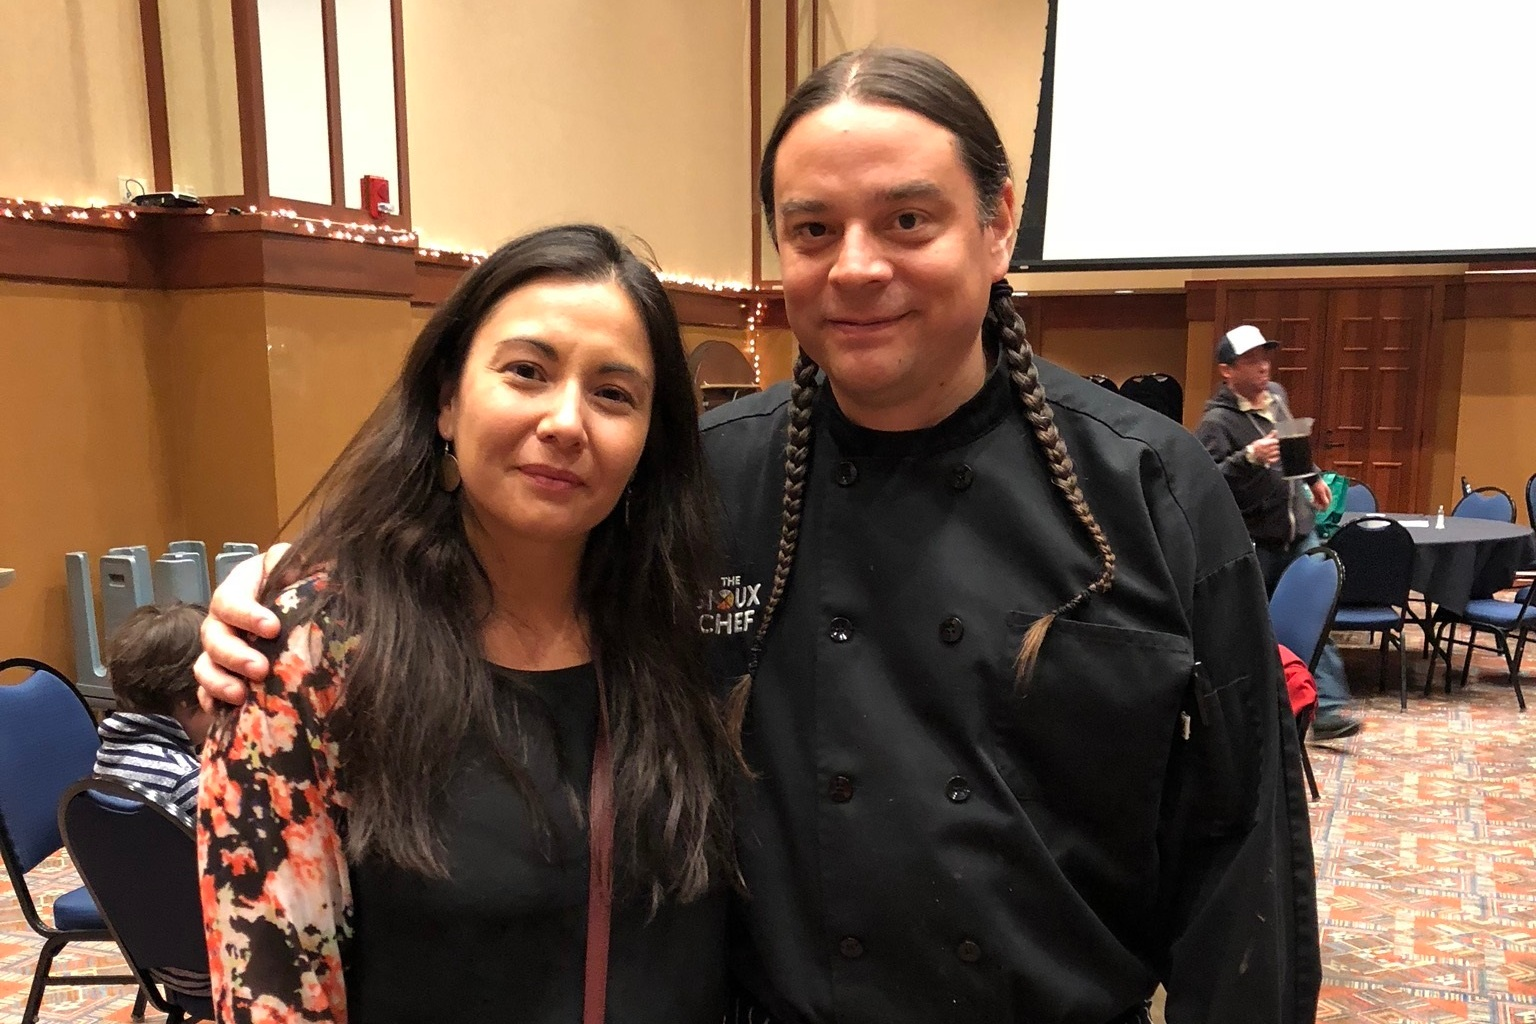 Christine with the Sioux Chef, Sean Sherman, at the Great Lakes Intertribal Food Summit at the Meskwaki Nation in May 2018.